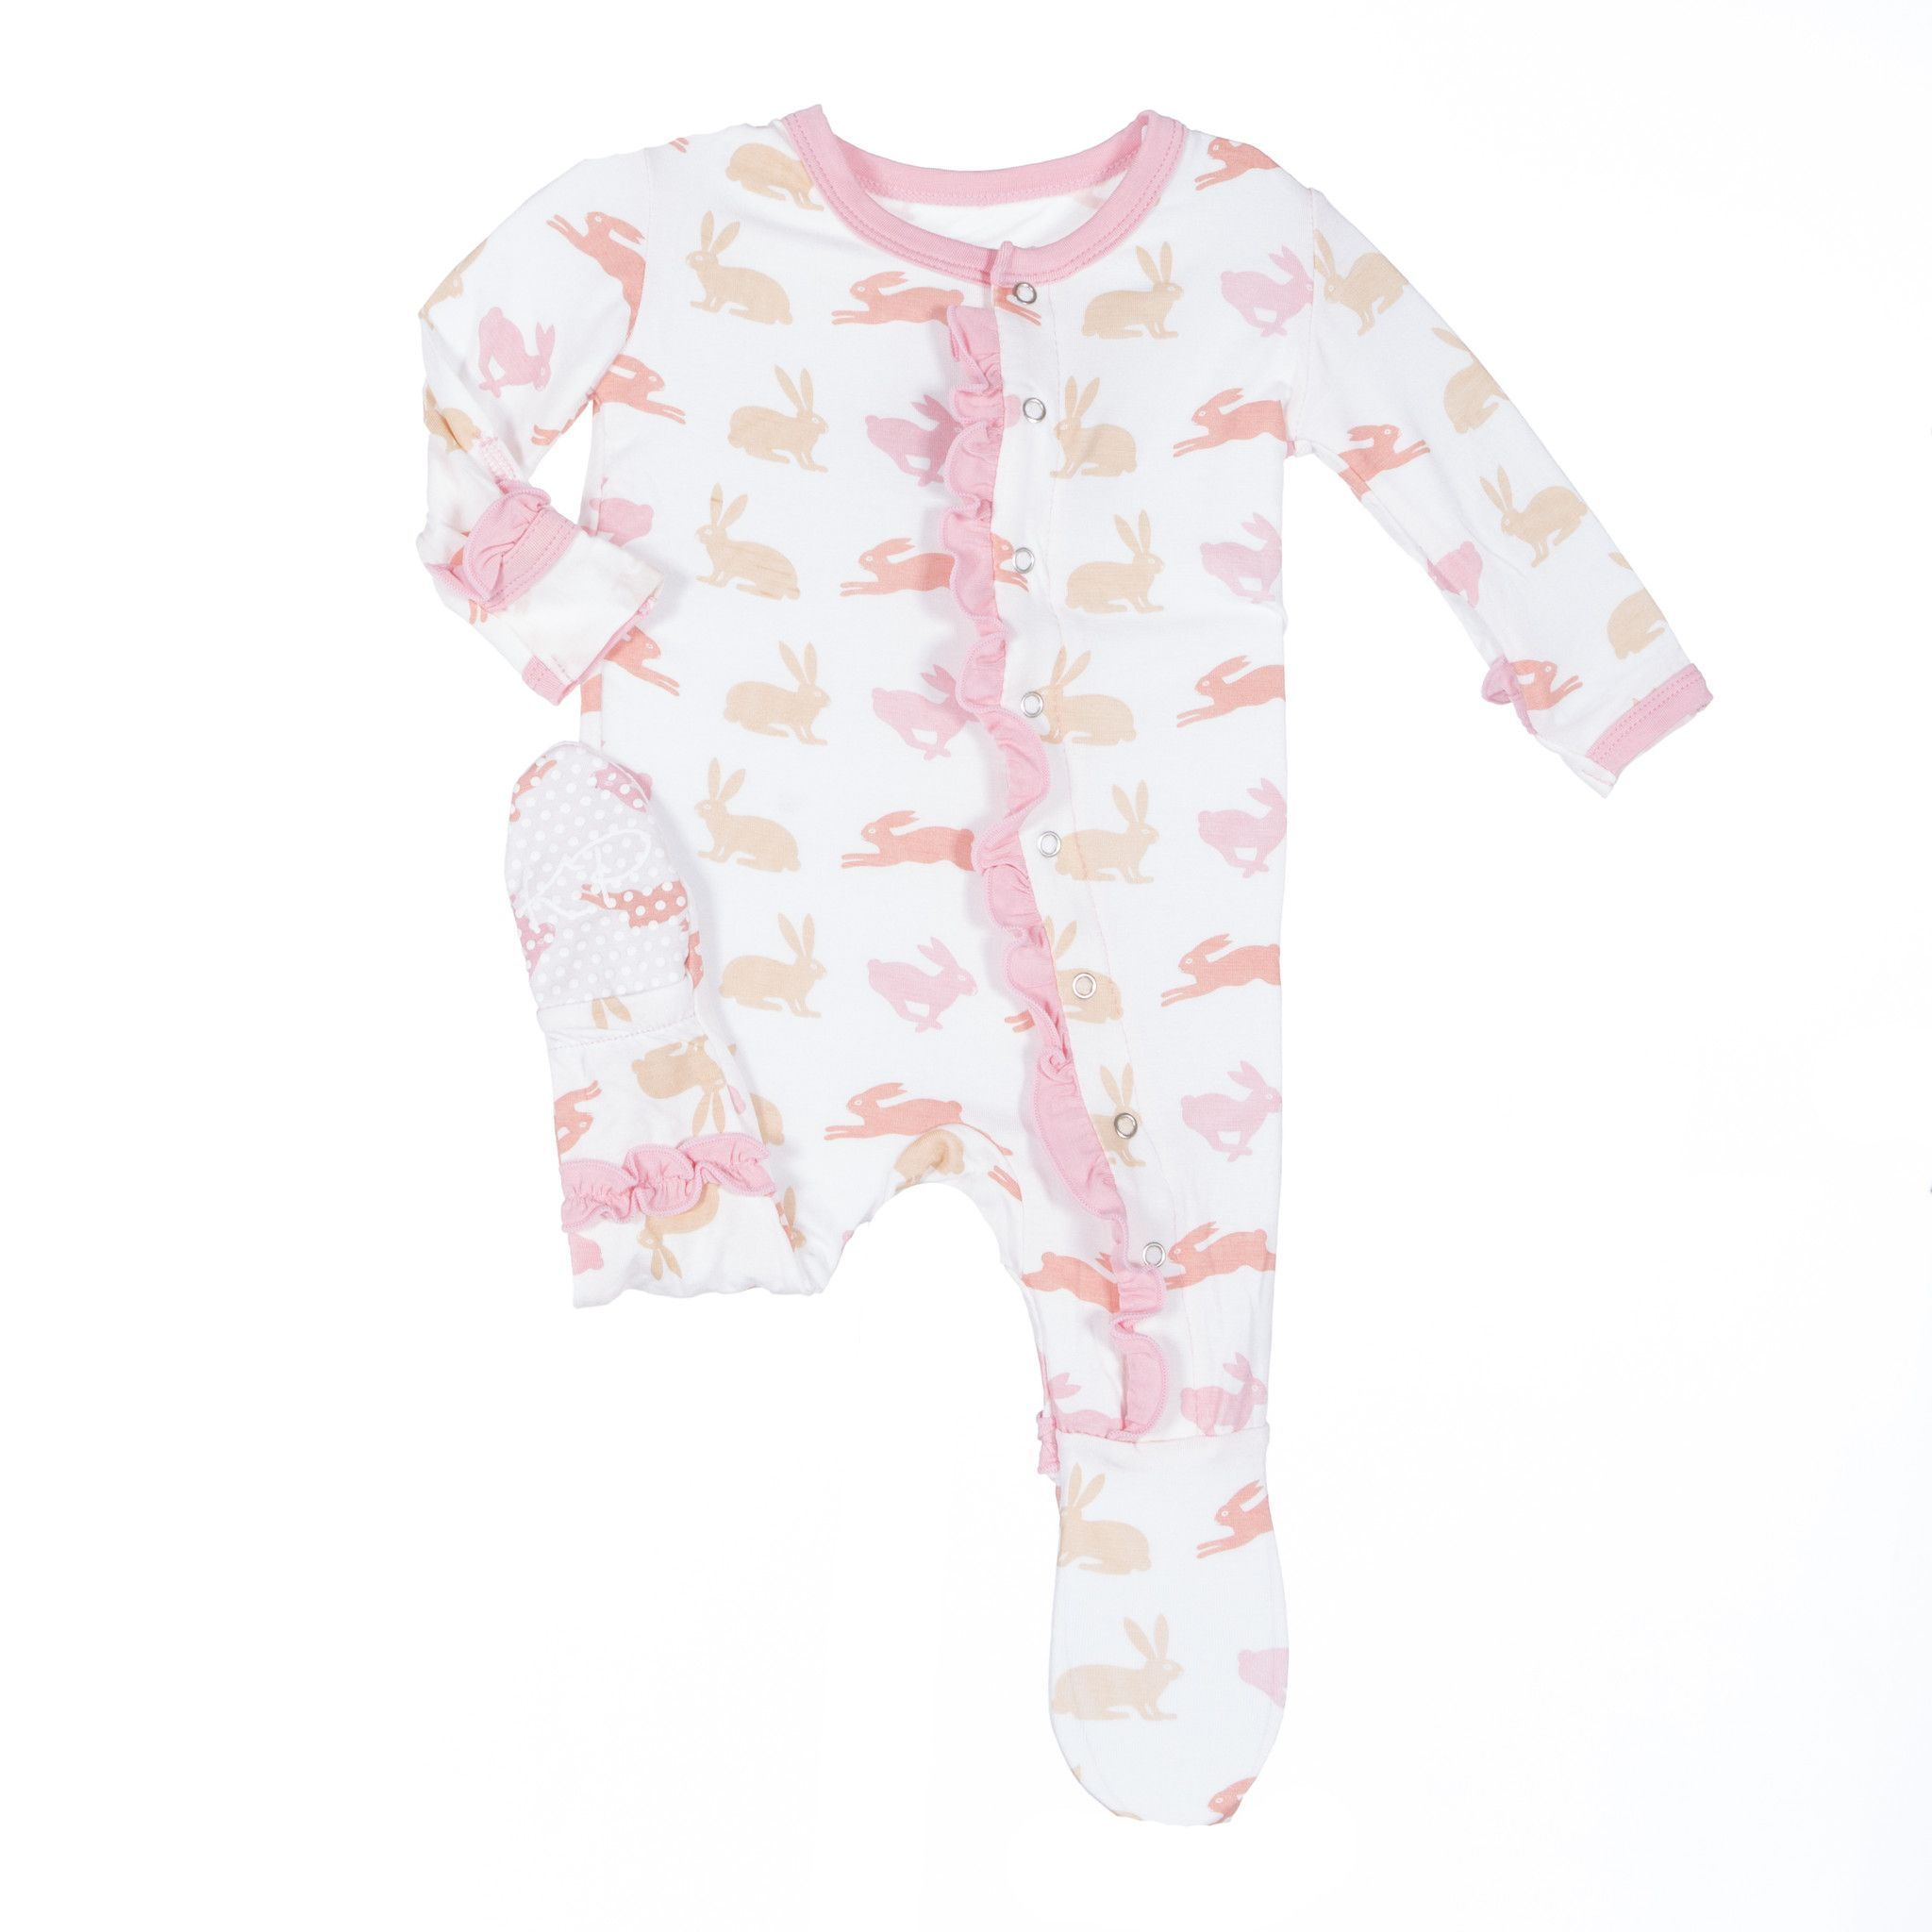 3c5568979 Super soft and cozy Kickee Pants baby girl footie - Adorable natural ...